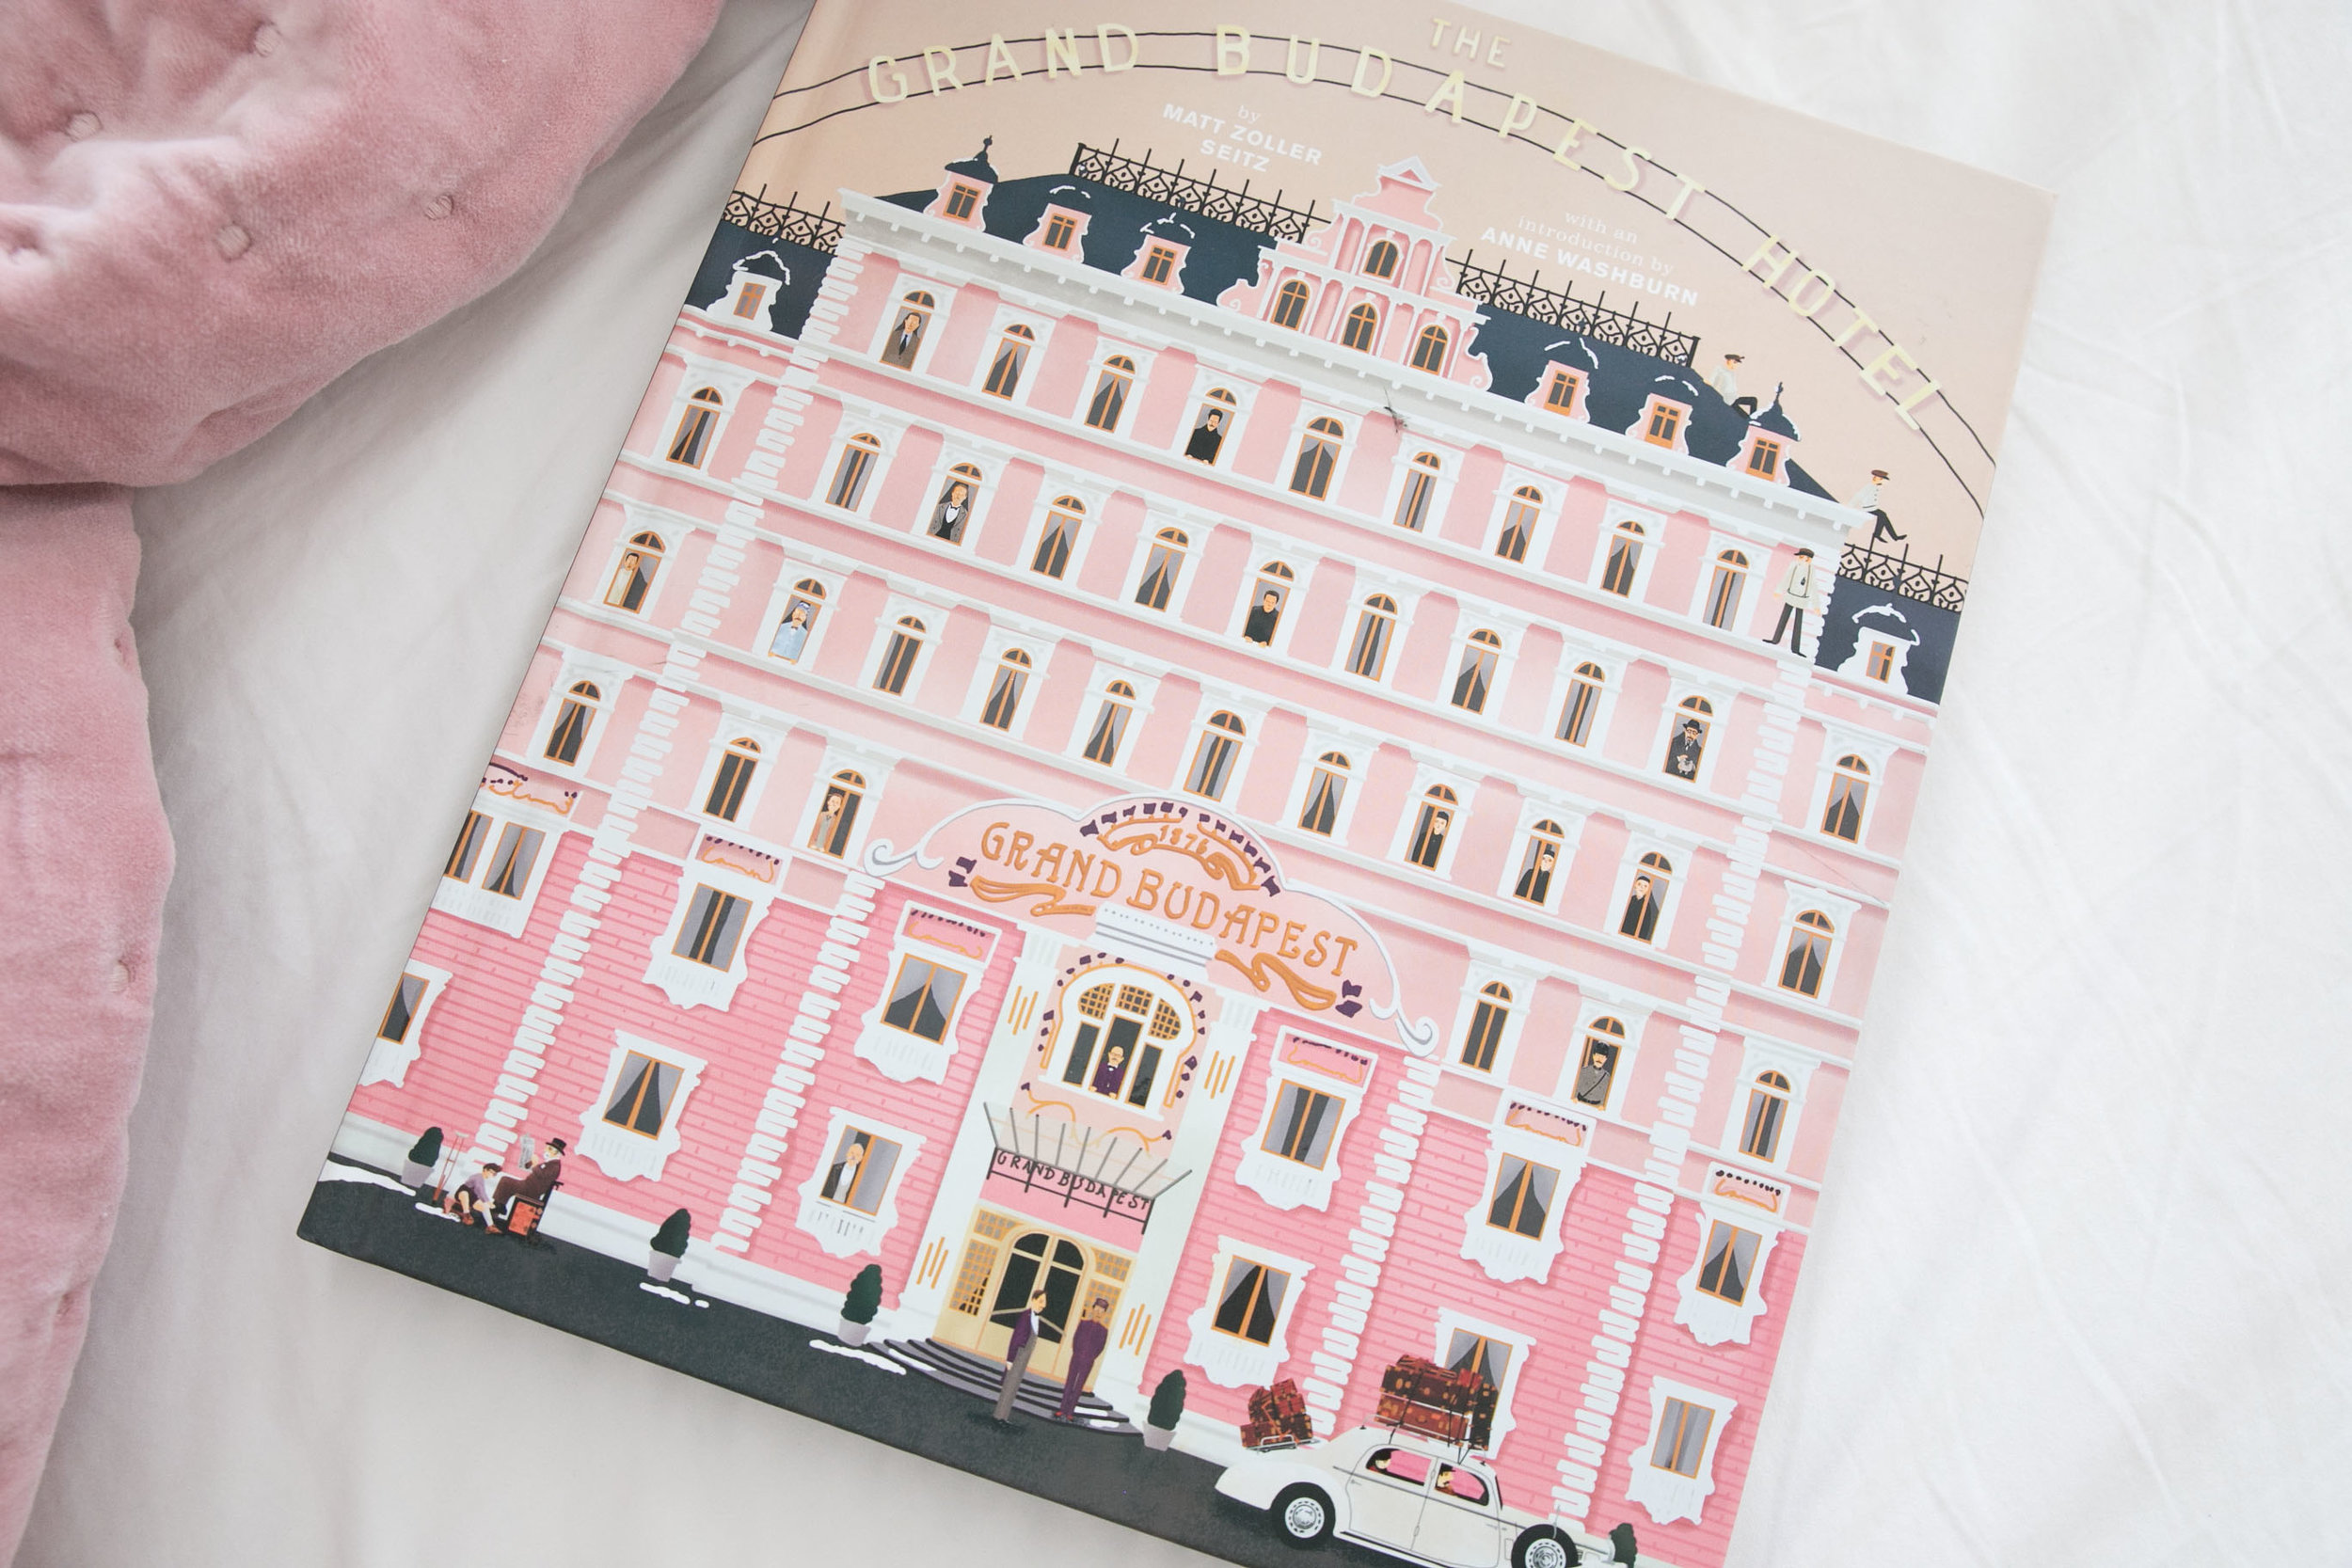 the grand hotel budapest hotel book.jpg